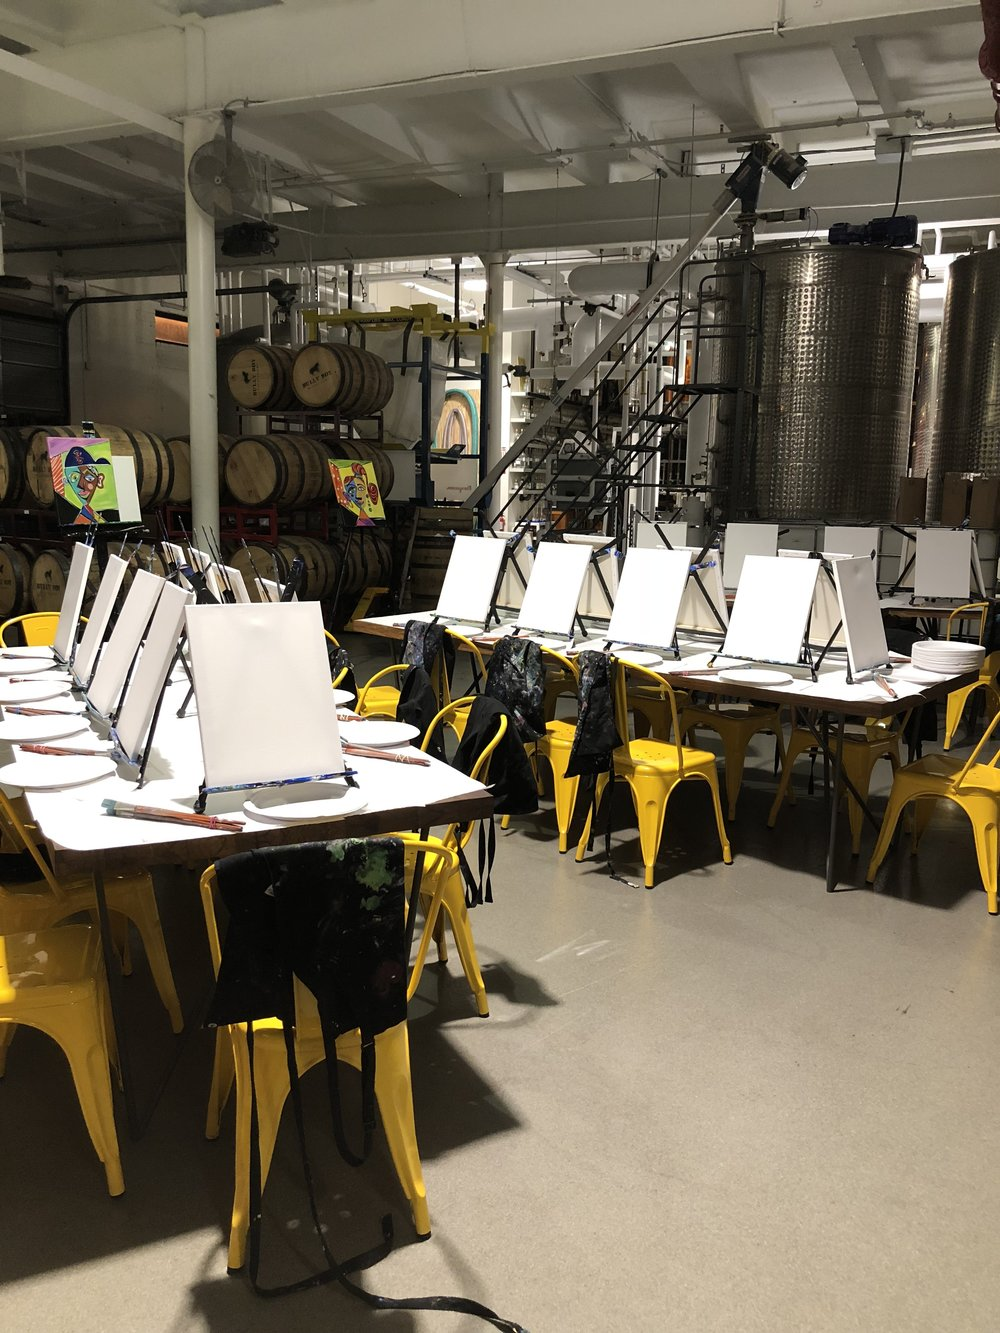 Paint Night on the Production Floor